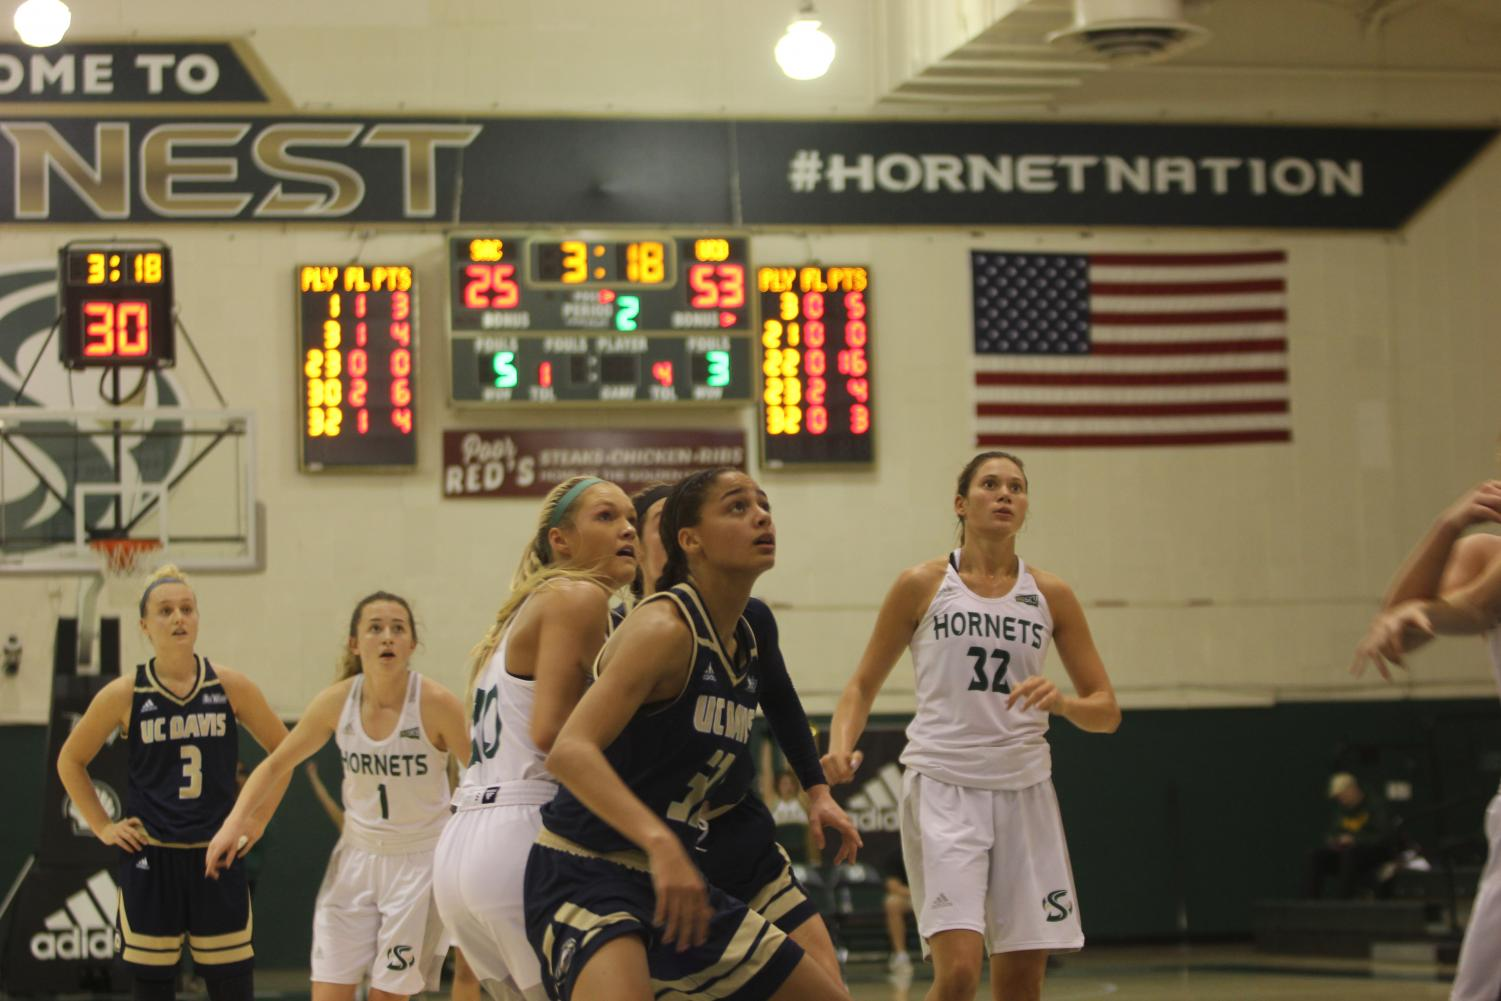 Players on both teams anticipate a rebound following a free-throw attempt by Sac State junior guard Hannah Friend in a 109-60 loss to UC Davis at the Nest on Dec. 7.